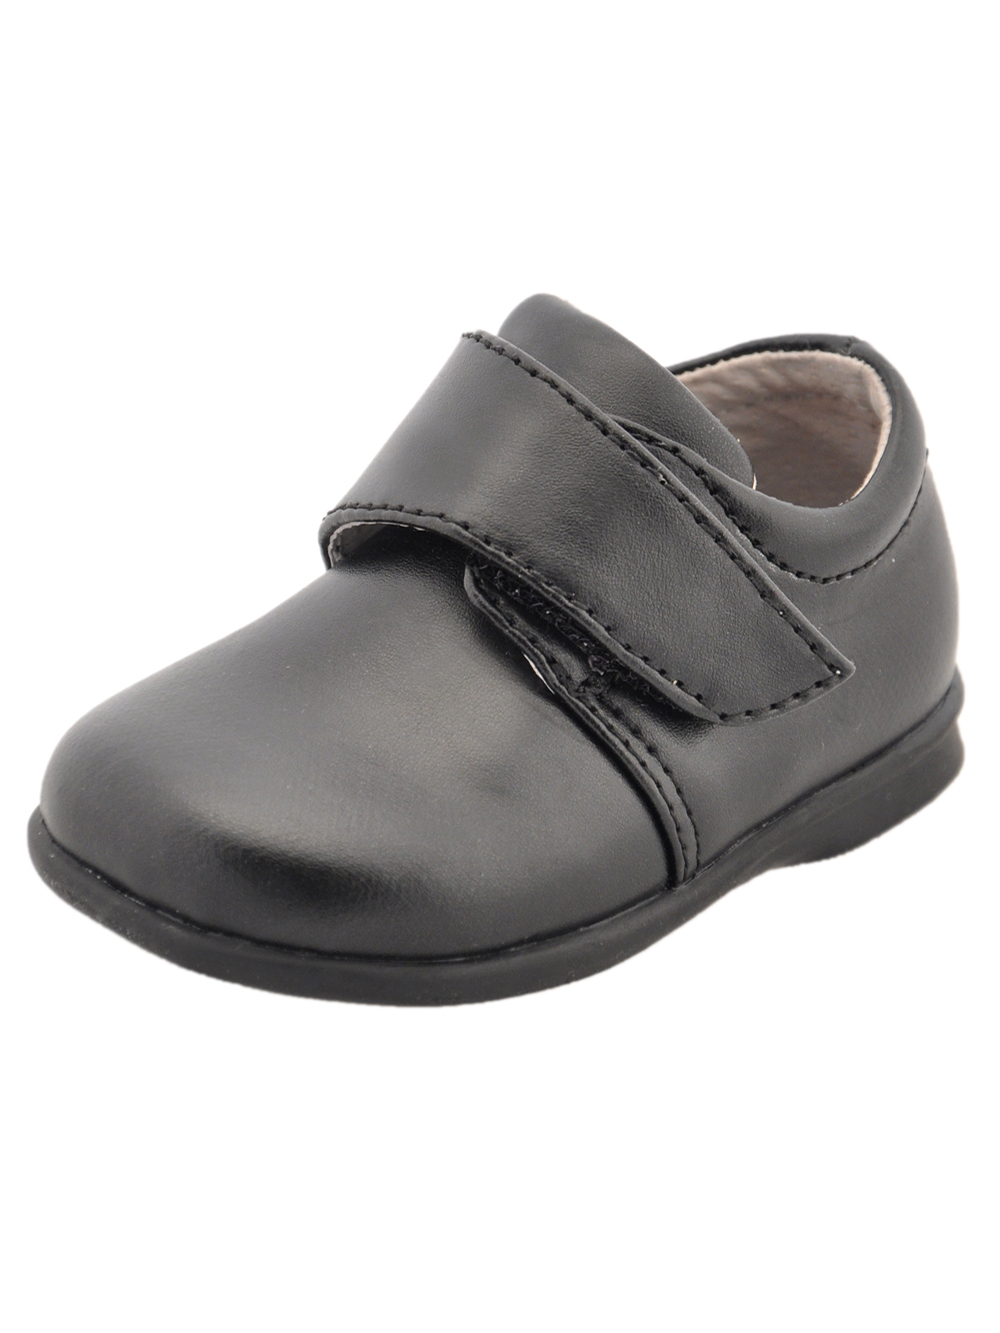 josmo boys impress dress shoes infant sizes 2 6 ebay